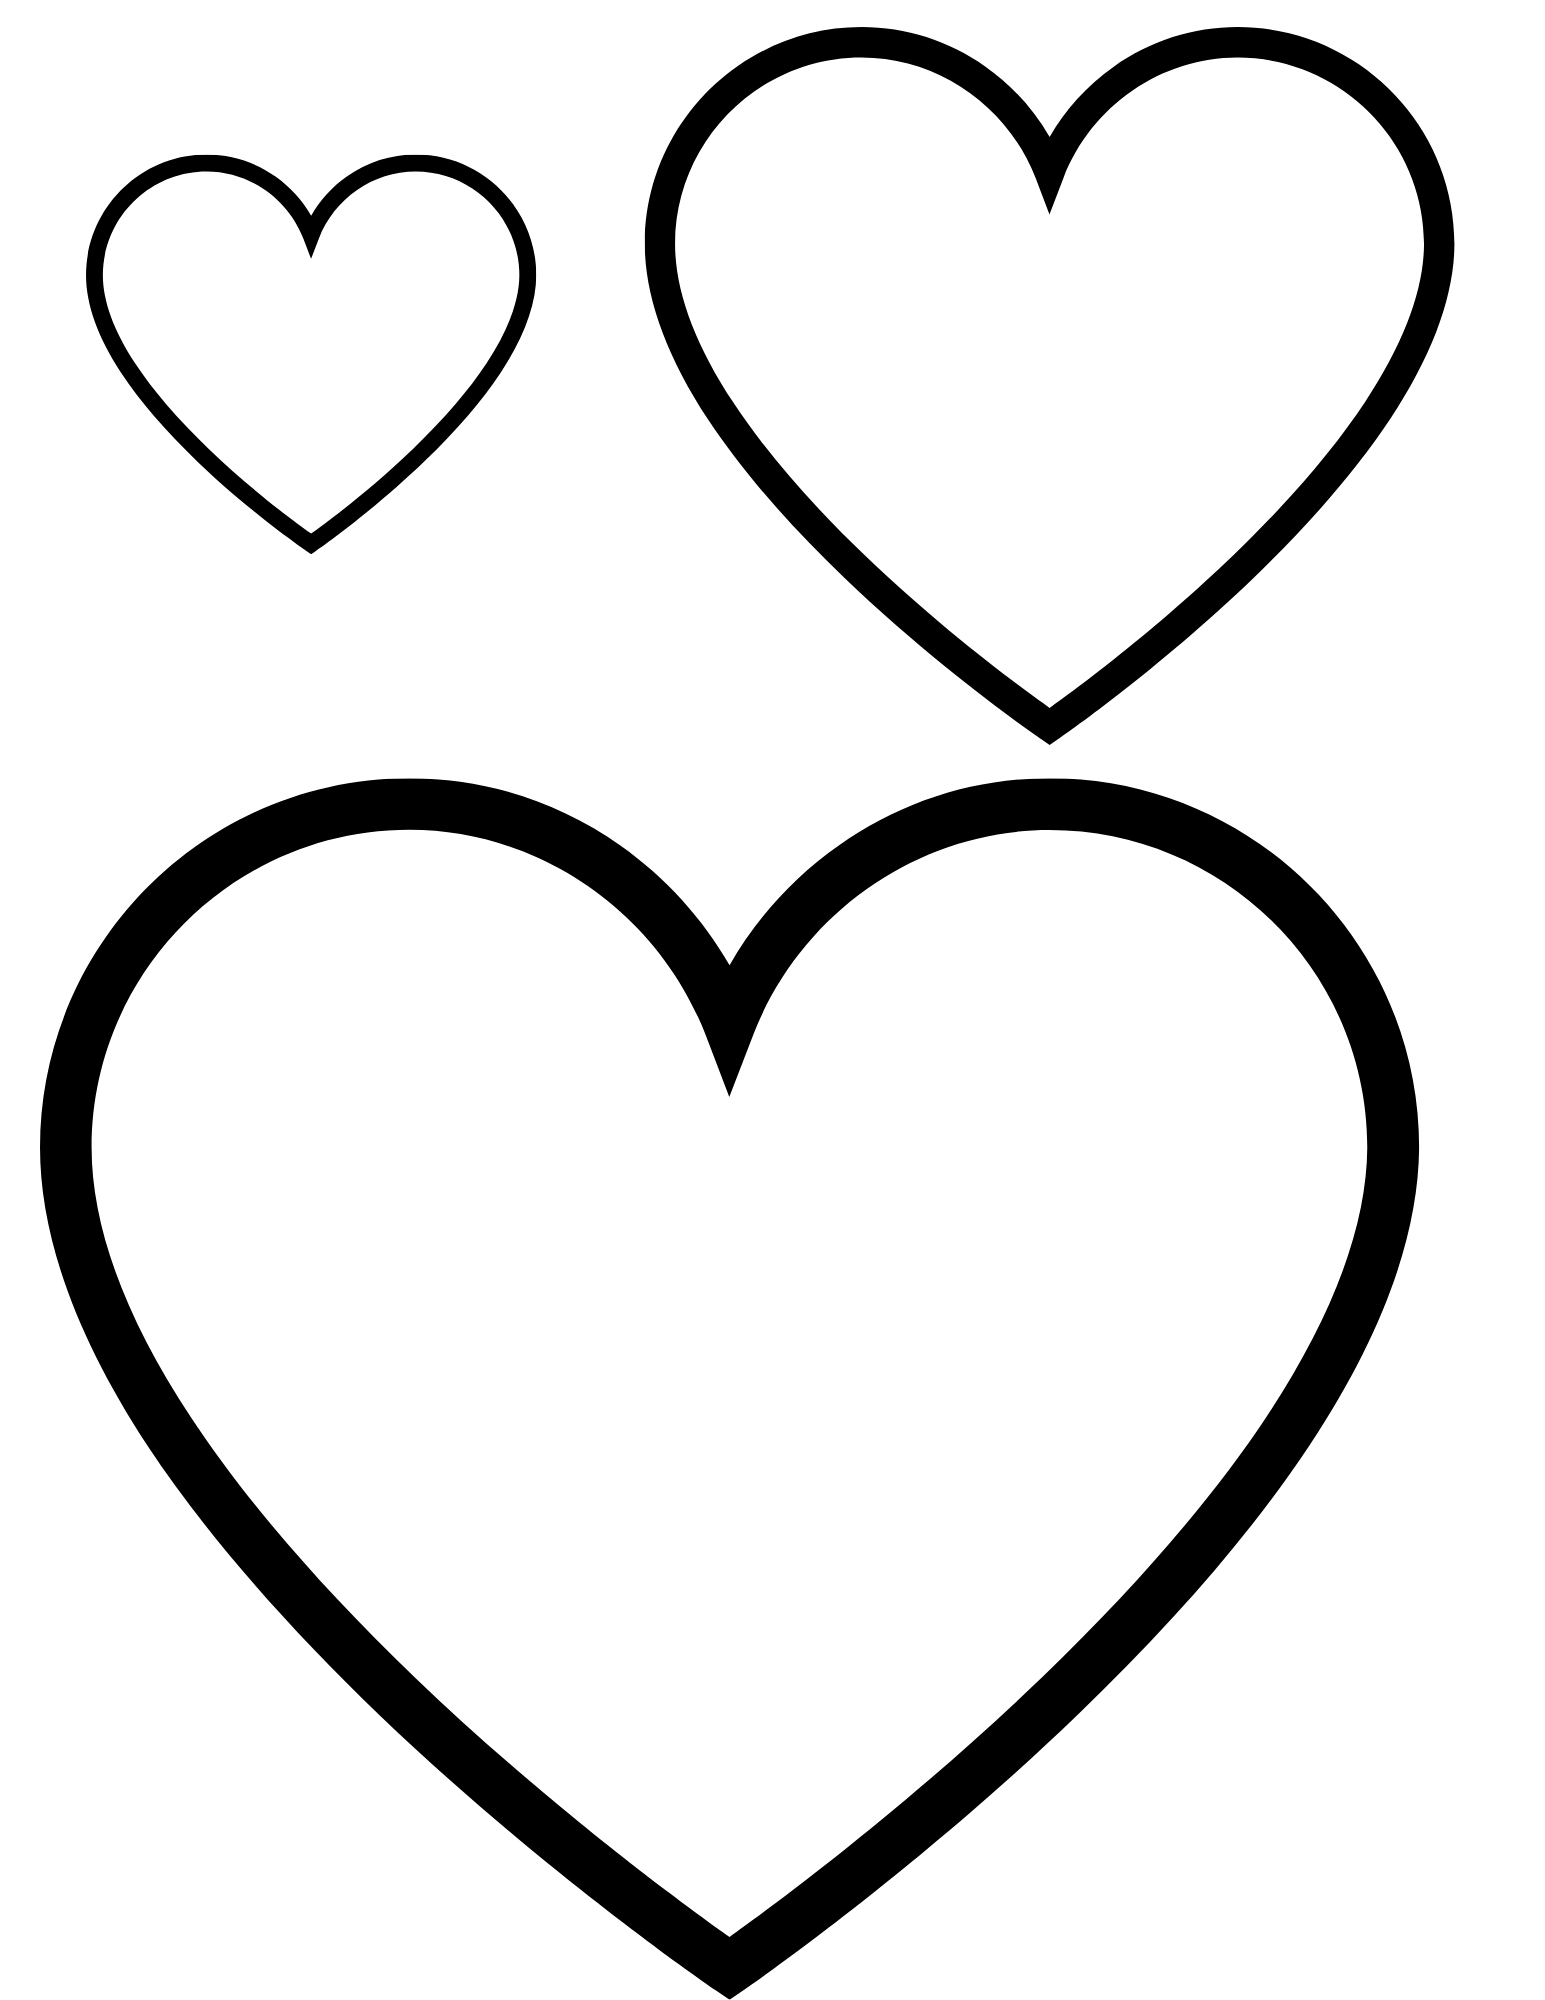 coloring pages heart shape heart coloring pages heart coloring pages heart coloring heart pages shape